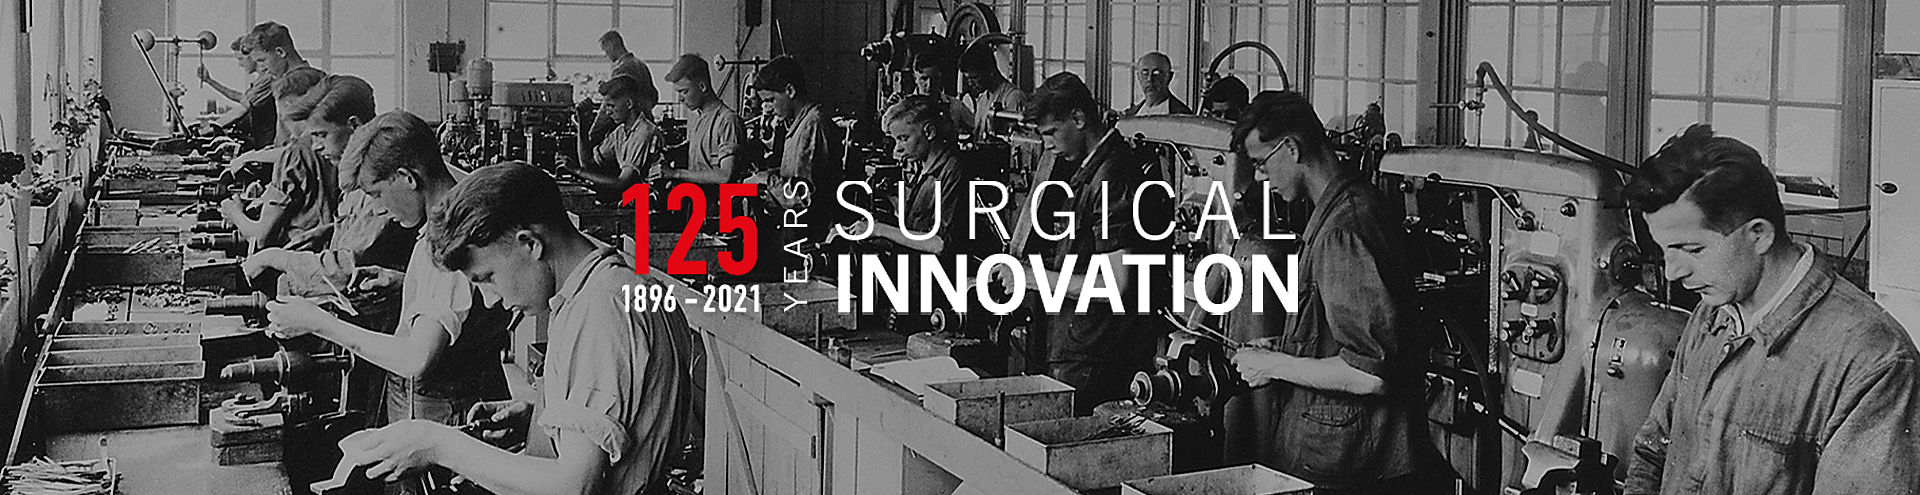 125 years surgical innovation